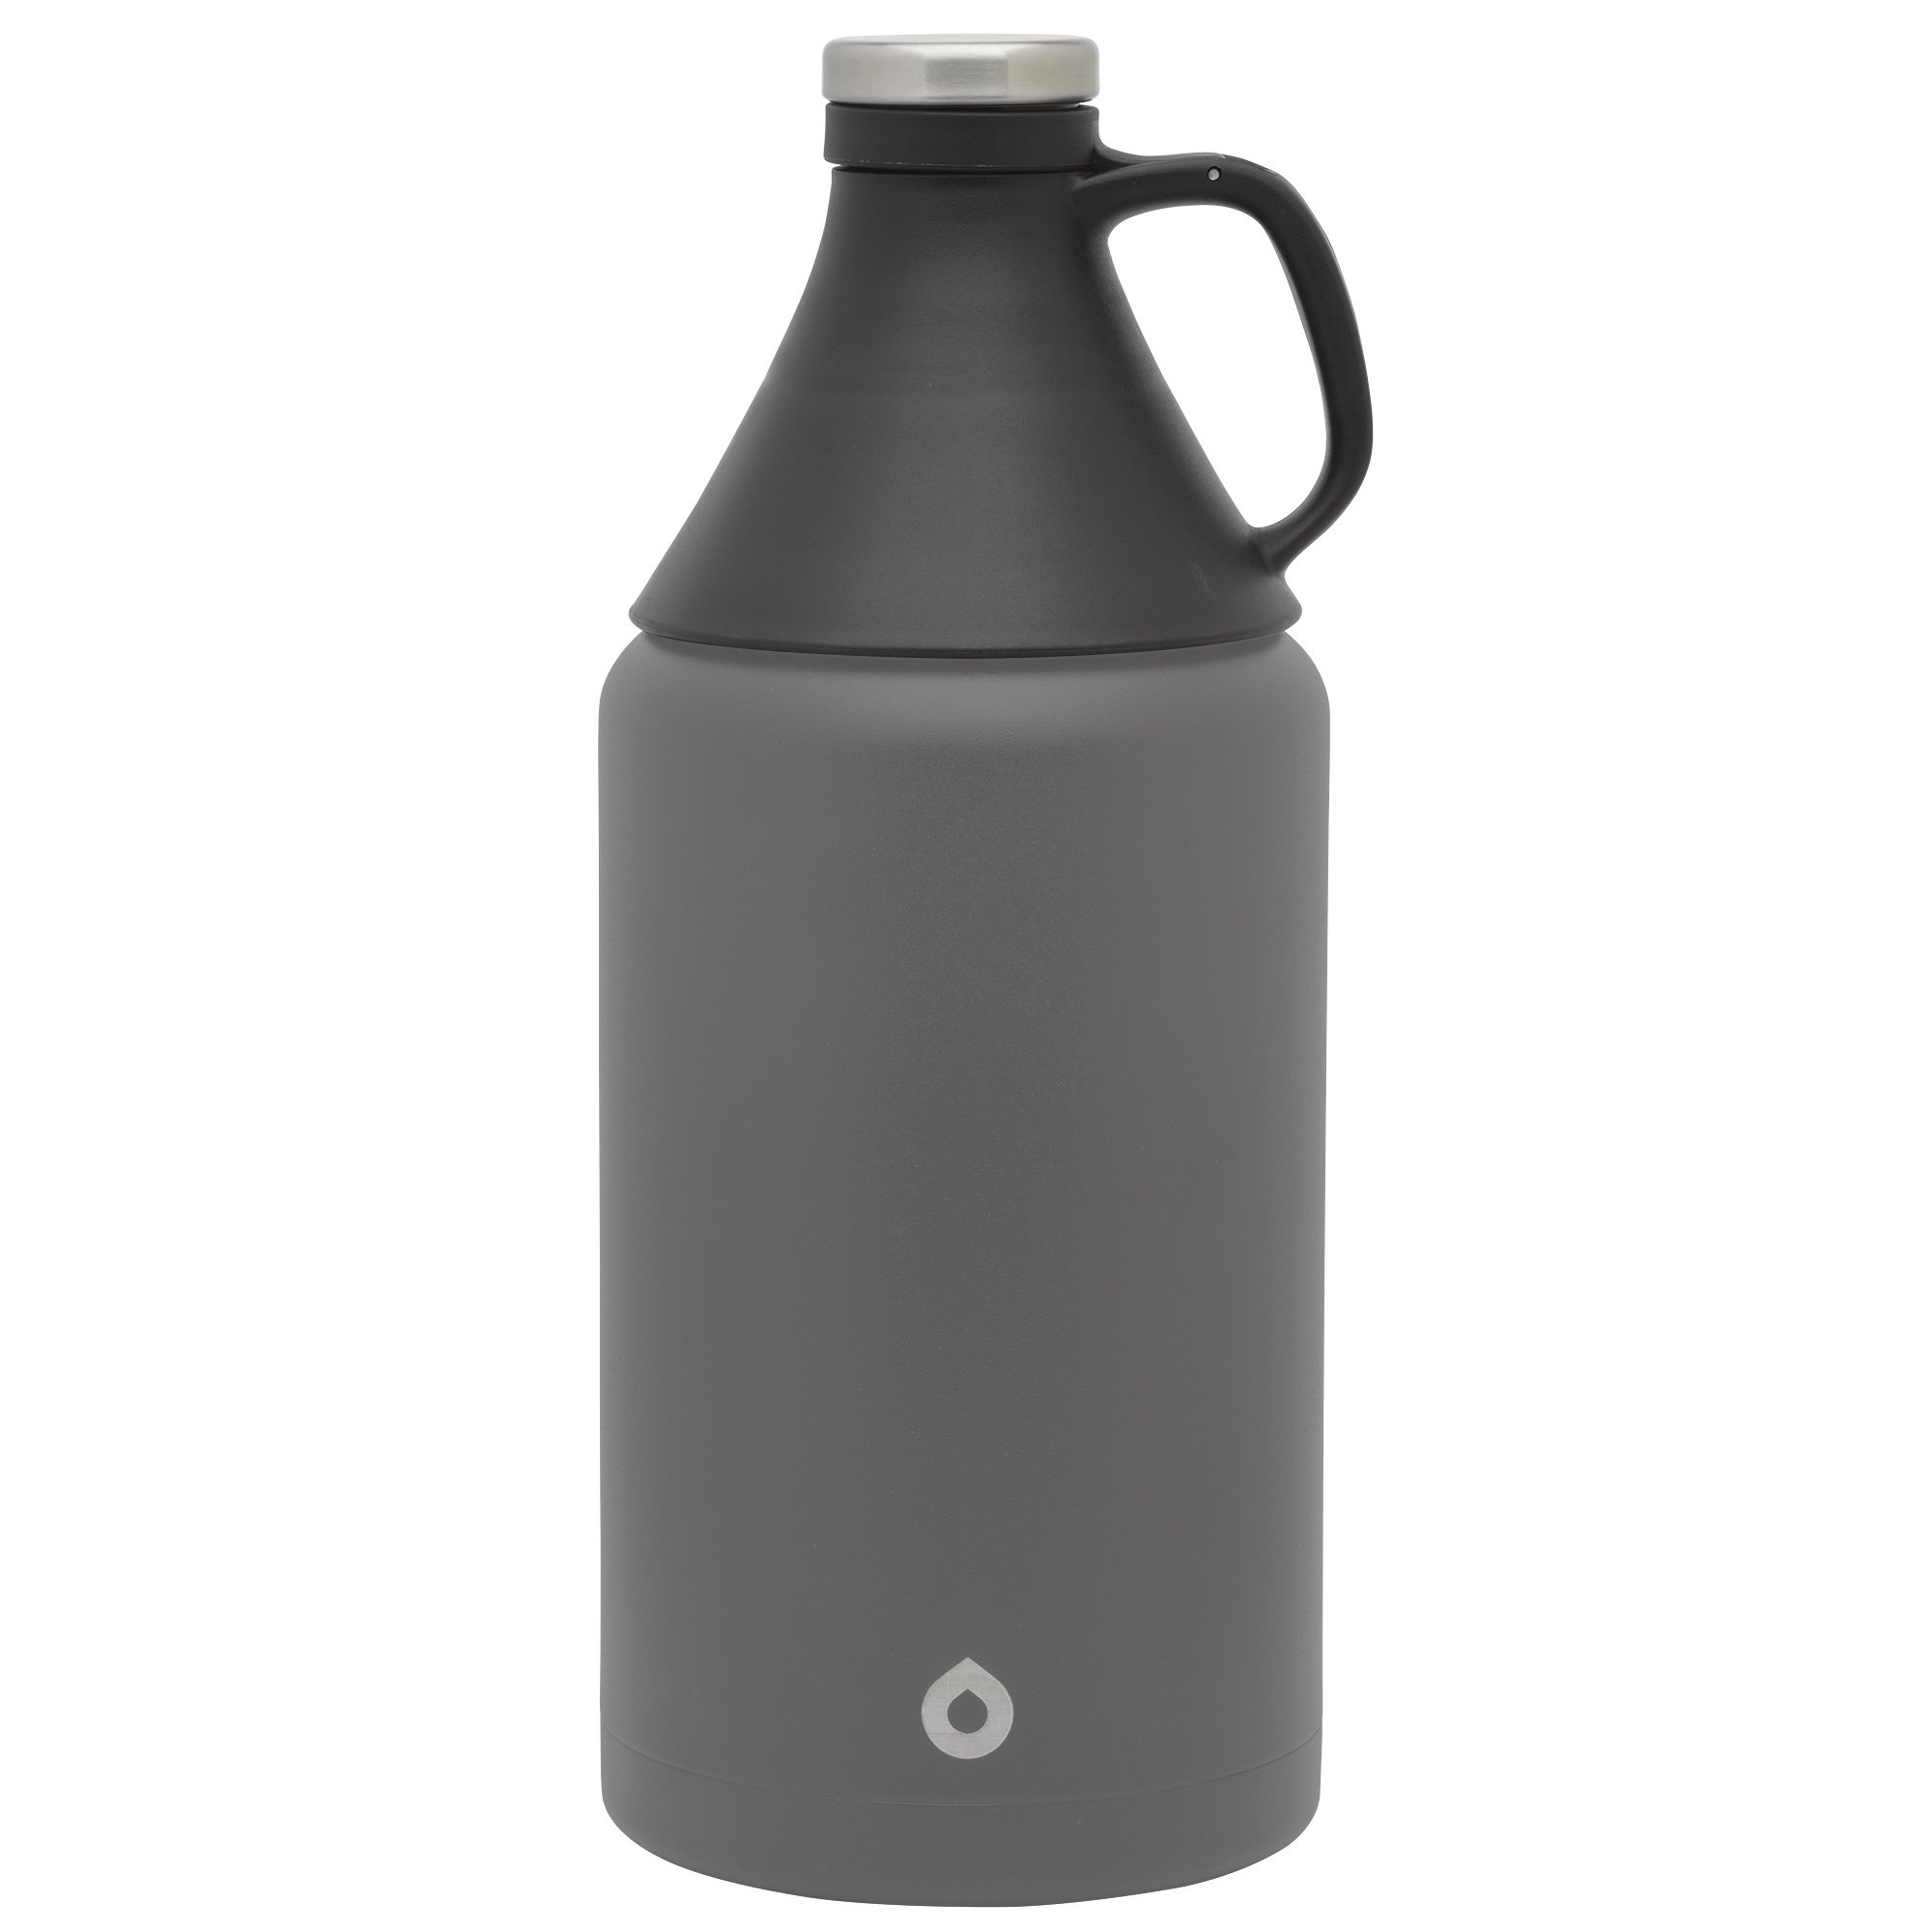 GoBottle 40480  Double Wall, Vacuum Insulated Stainless Steel Growler with Airtight Seal for Beer, Water, Coffee, and more, 64oz, Black by GoBottle